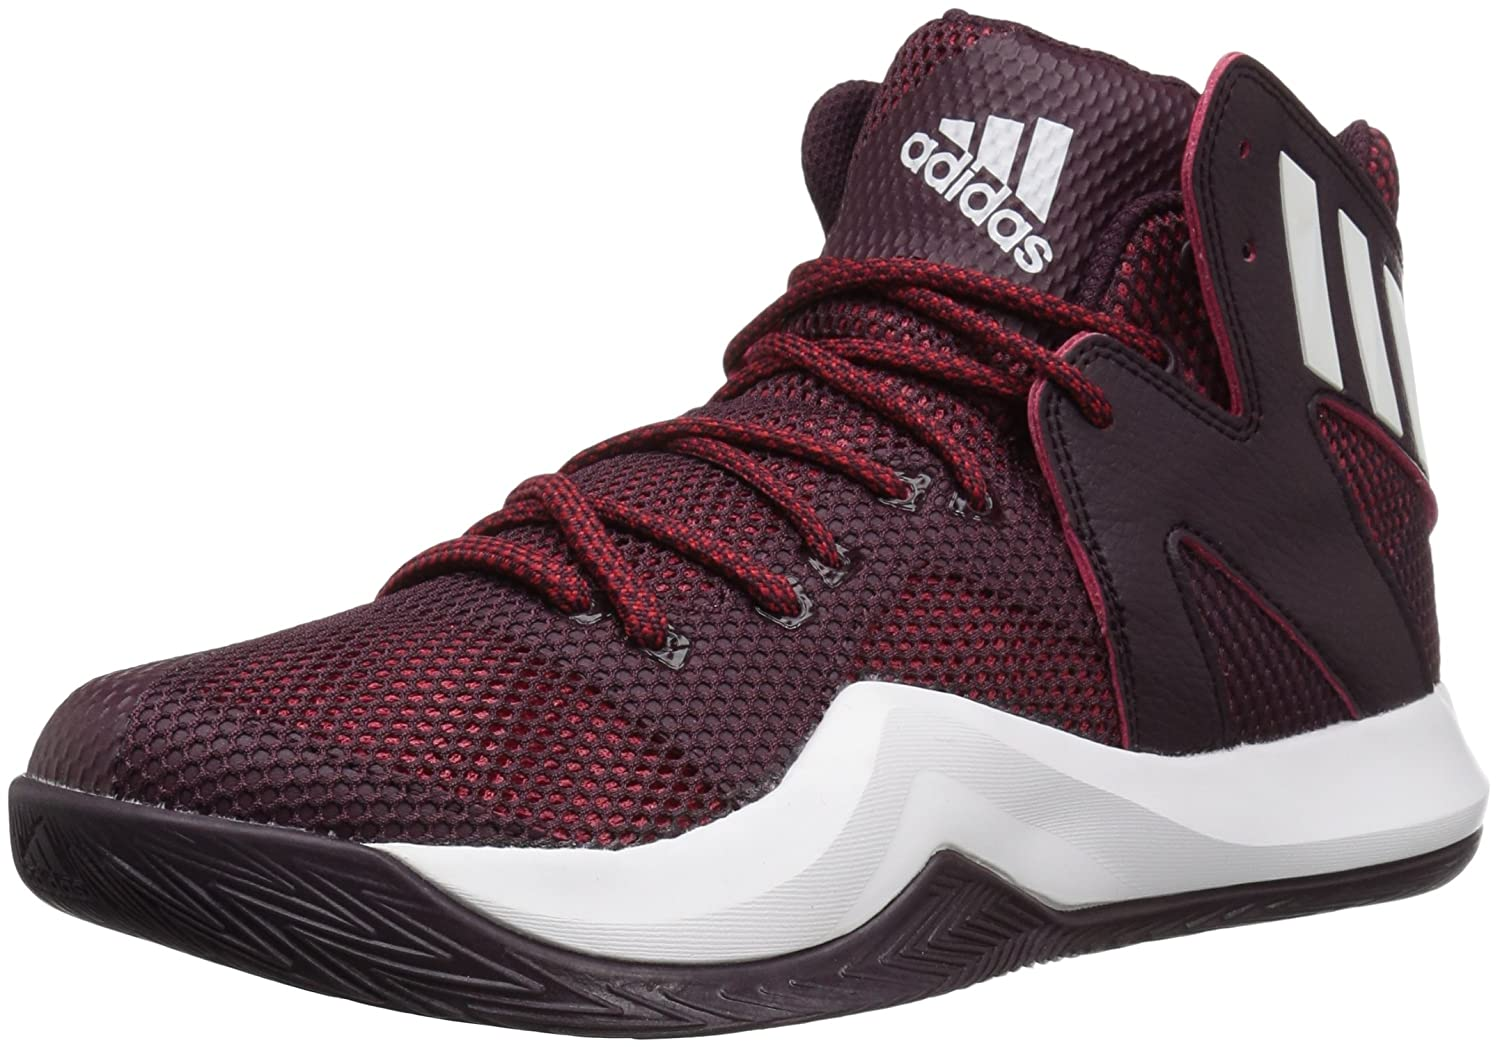 ebf3cb126b369 Adidas Men s Crazy Bounce Basketball Shoes  Adidas  Amazon.ca  Shoes    Handbags